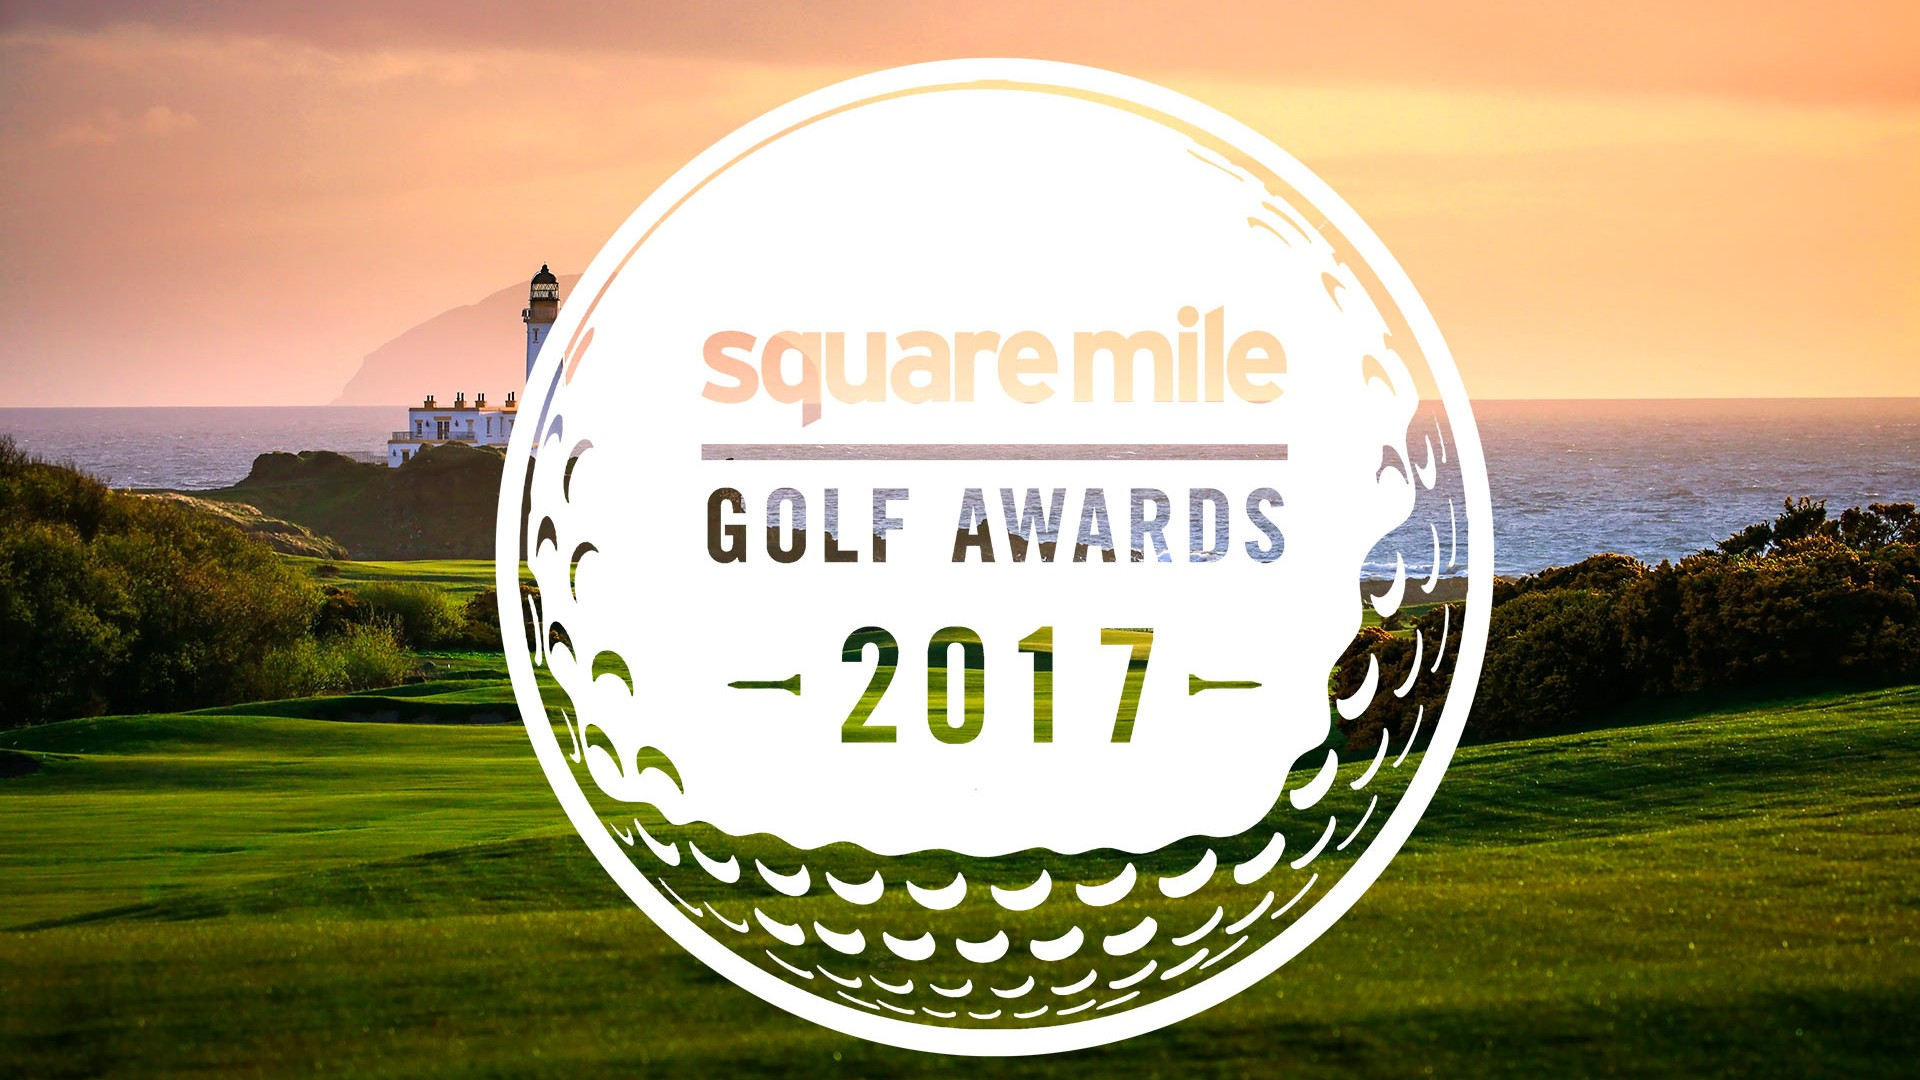 Golf Awards 2017, Square Mile